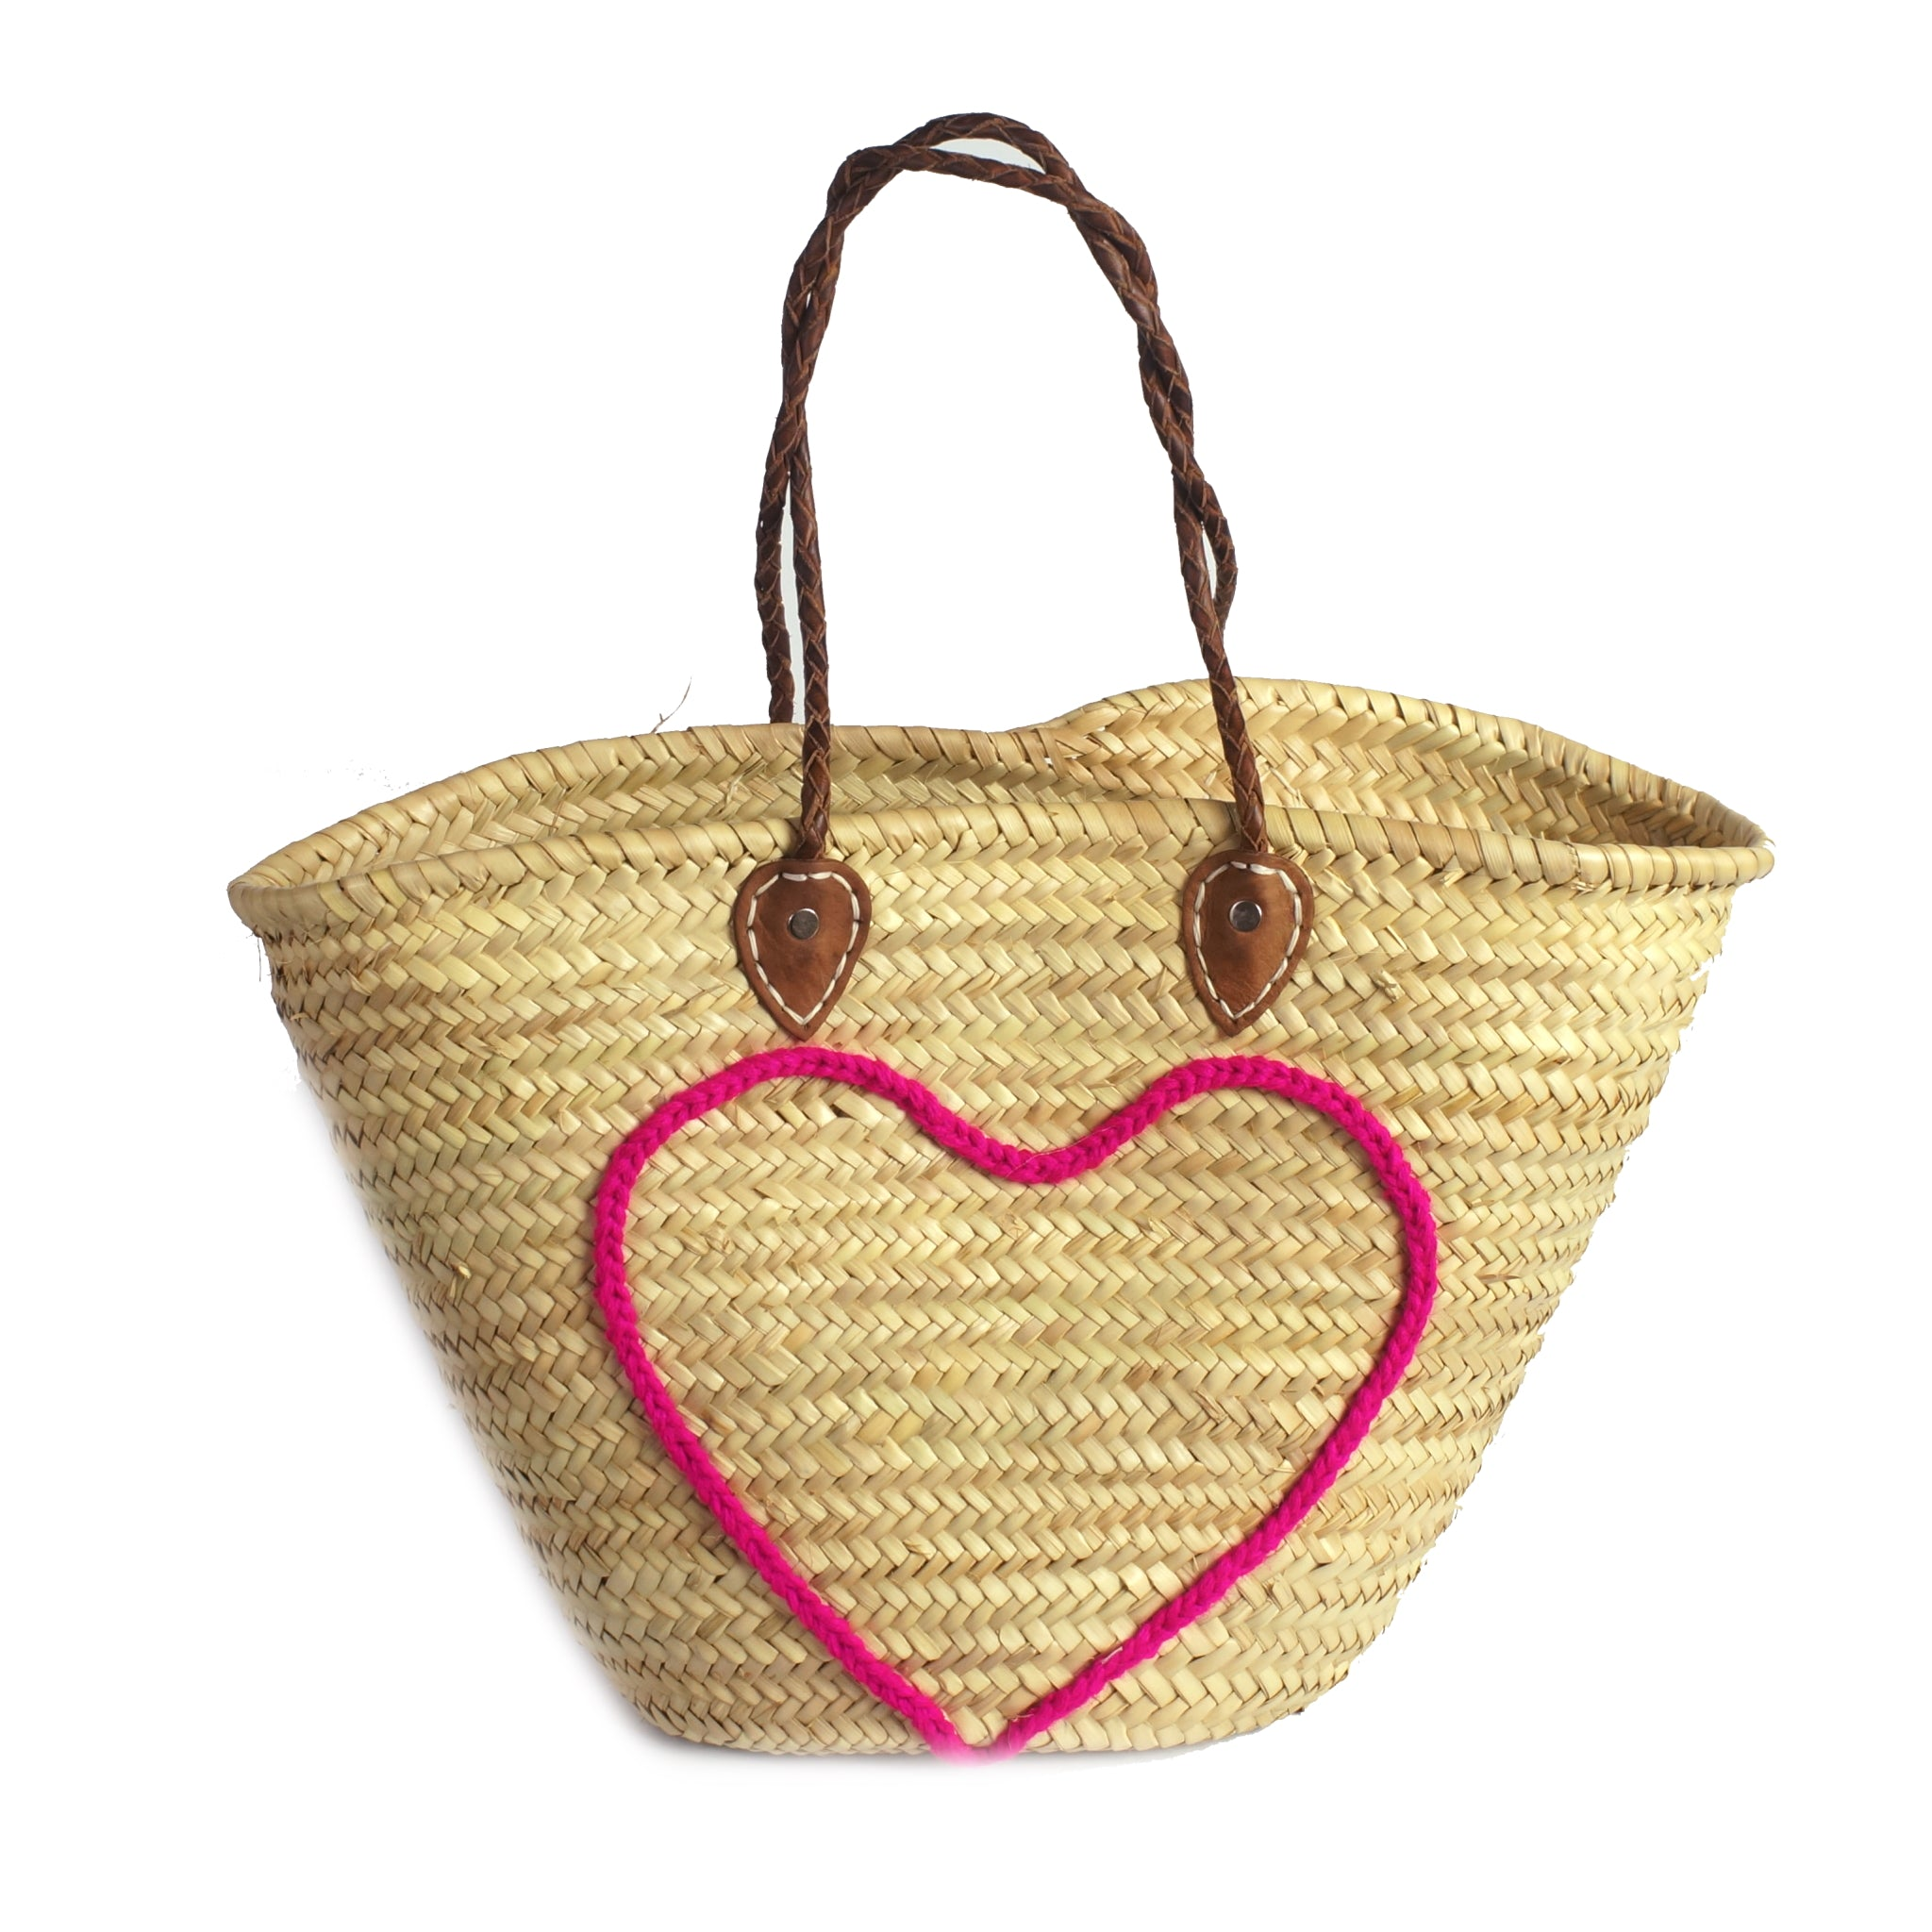 Basket shopping pink heart